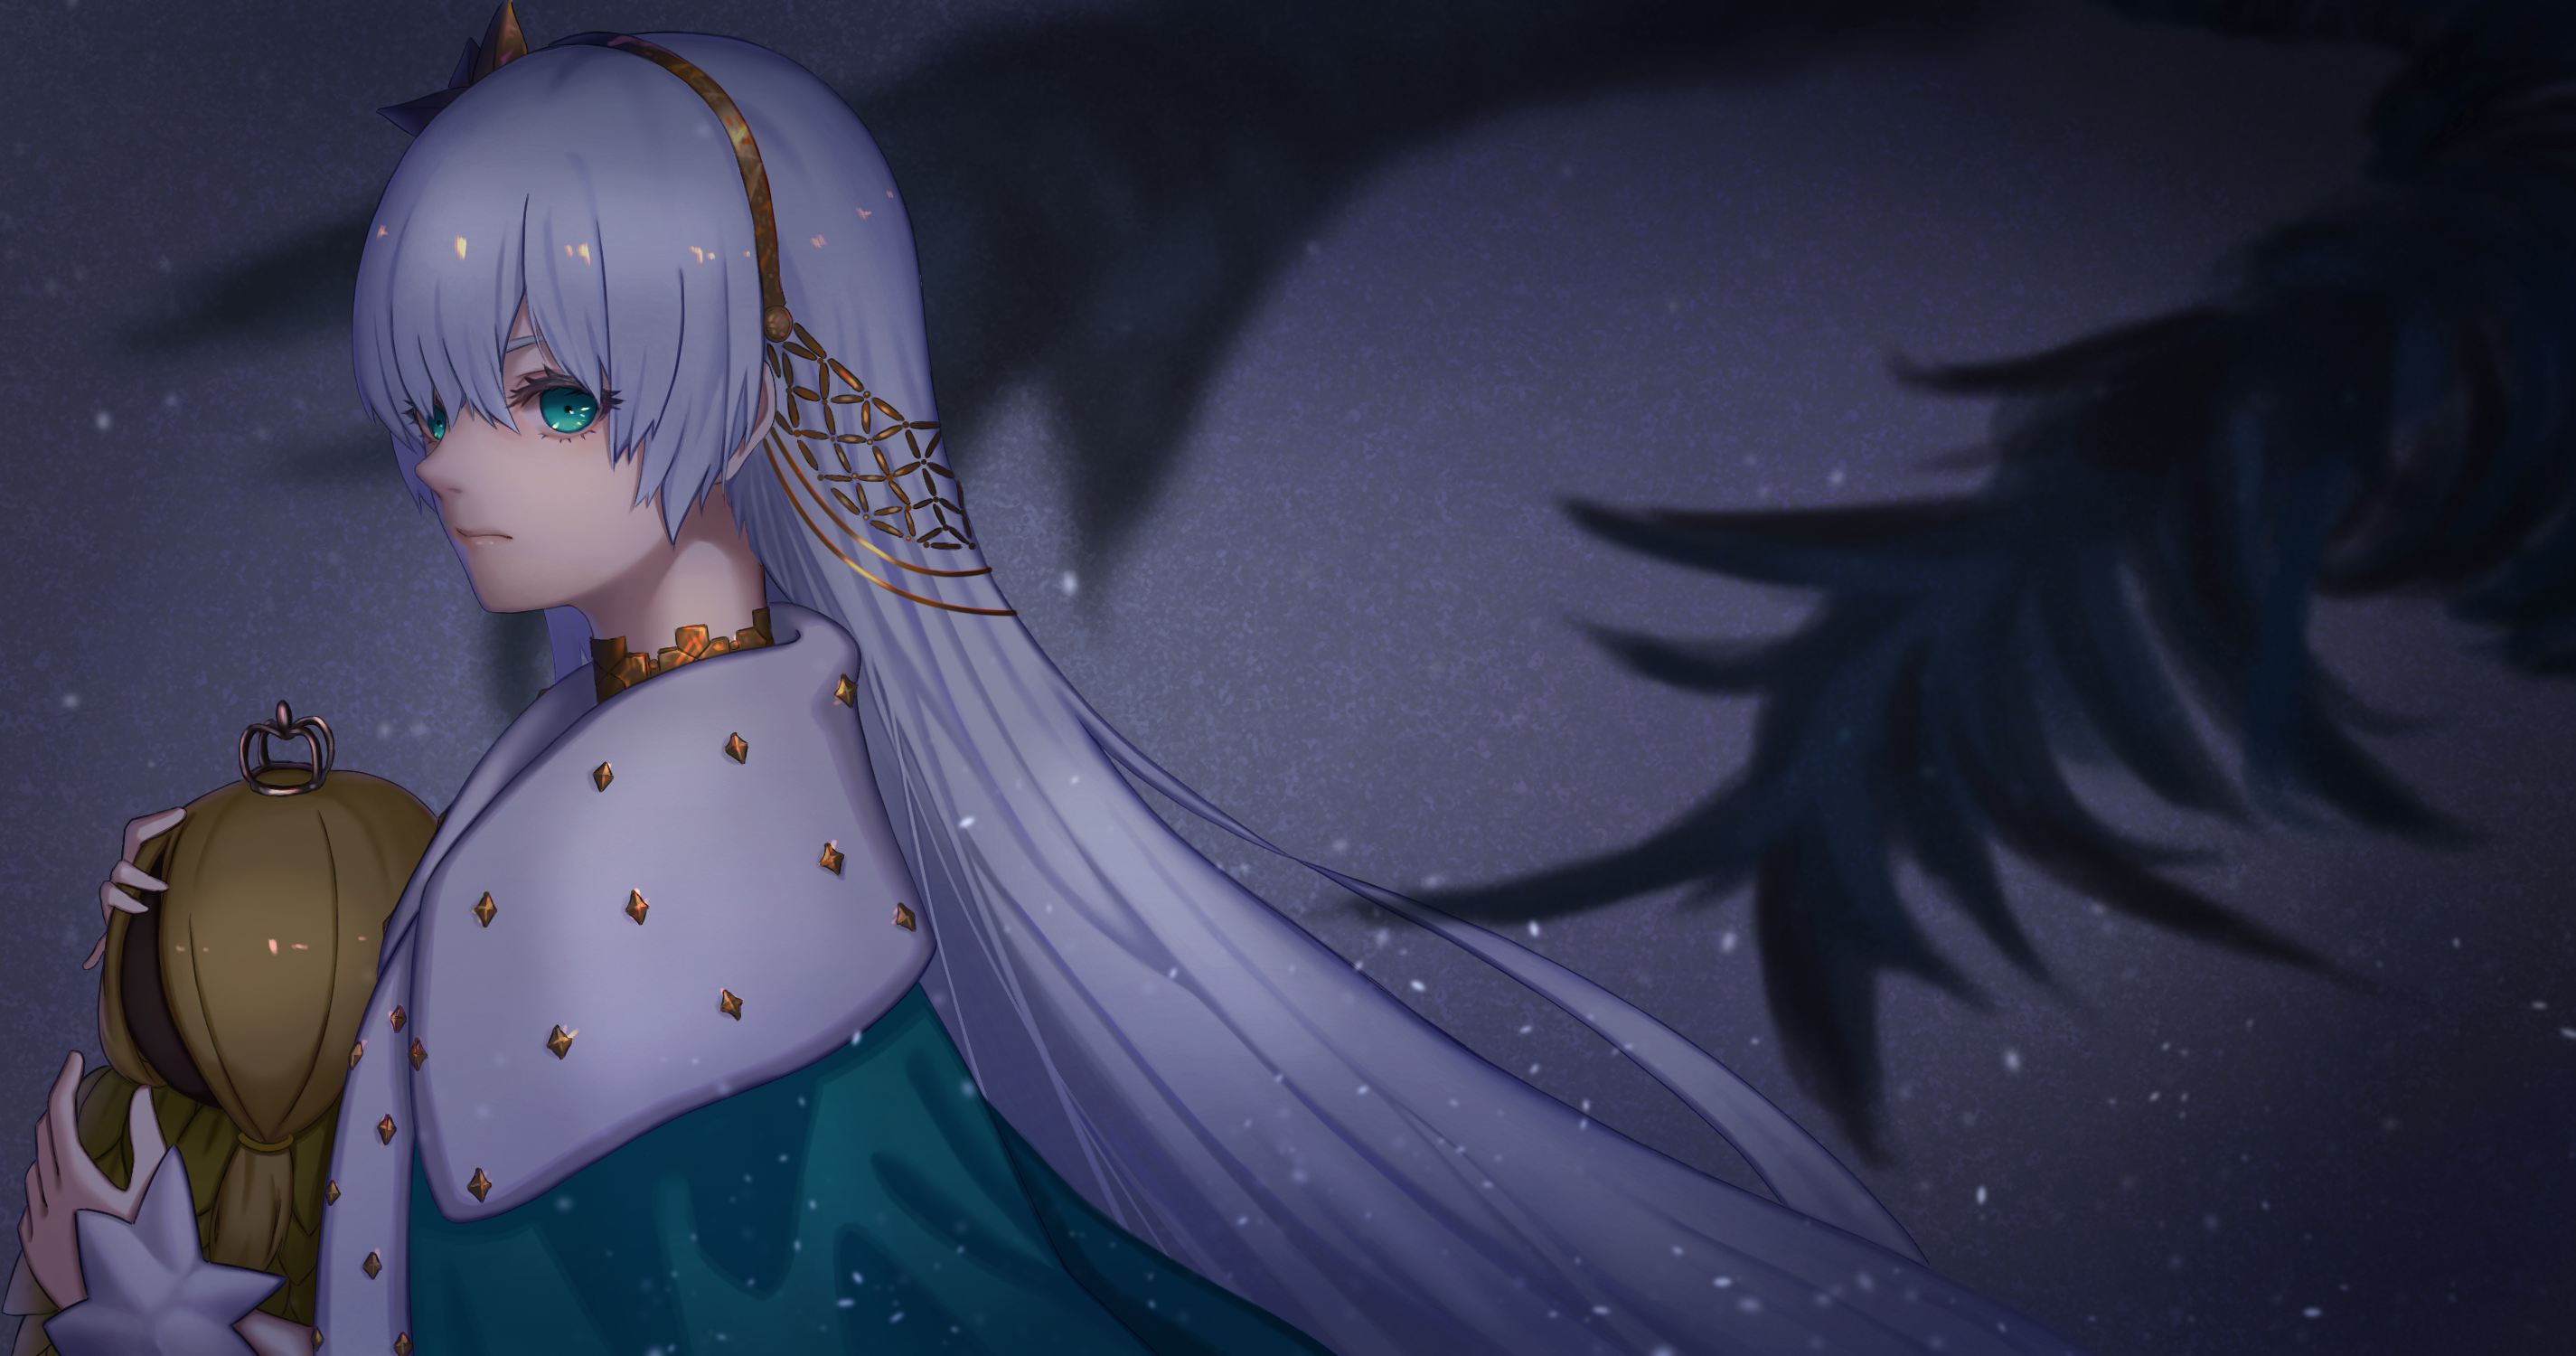 Fate Grand Order Hd Wallpaper Background Image 2850x1500 Id 913084 Wallpaper Abyss Awesome anastasia wallpaper for desktop, table, and mobile. wallpaper abyss alpha coders